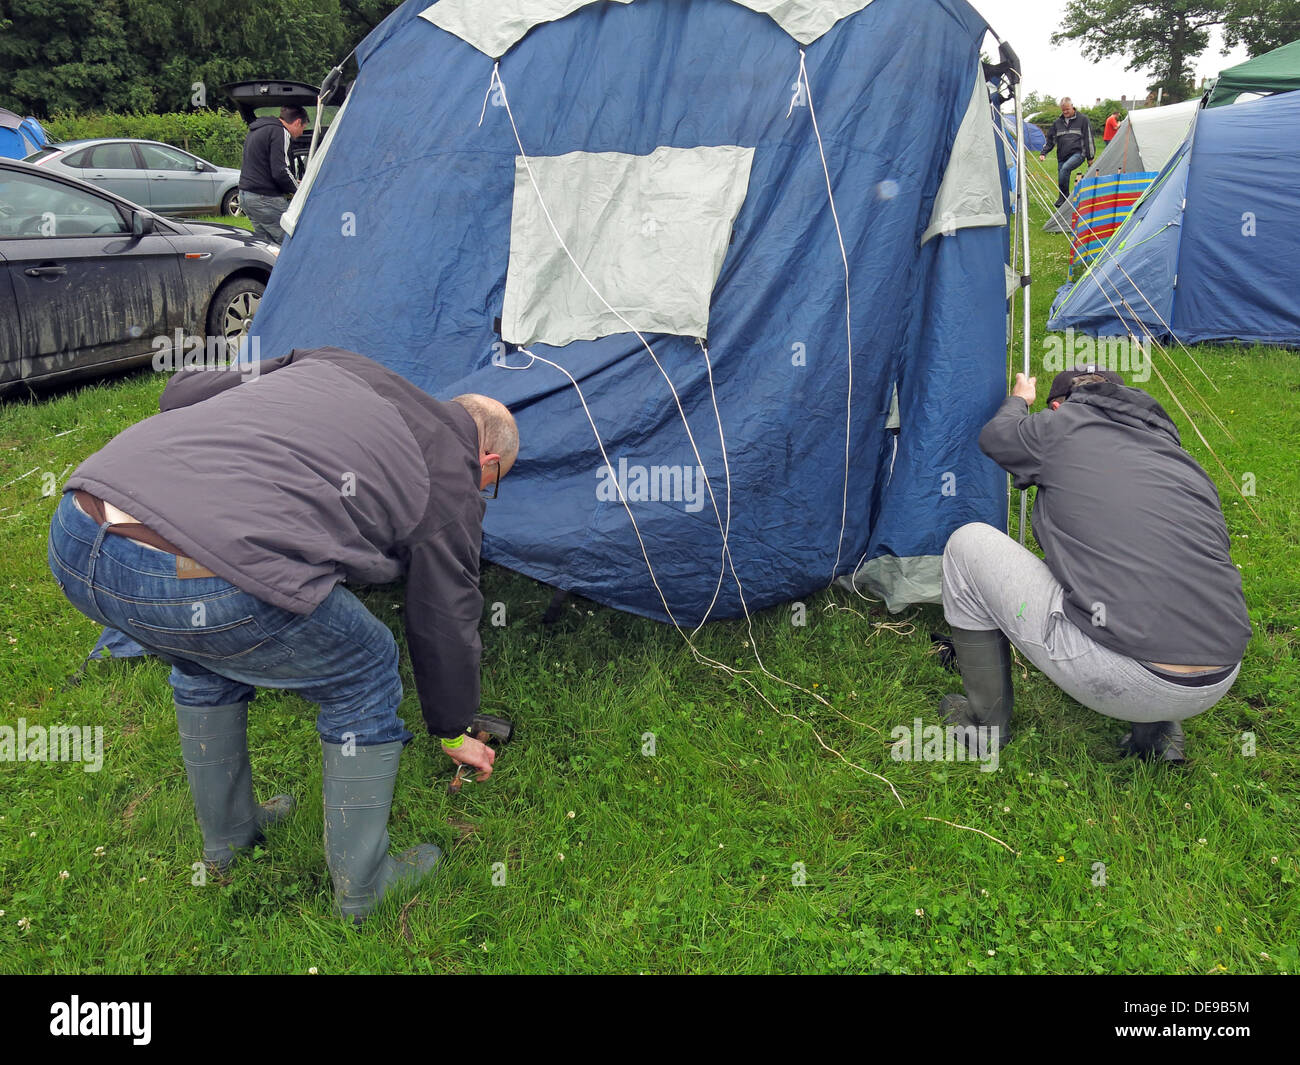 Happy campers erecting a tent at a festival or sporting event (F1 Grand Prix) - Stock Image